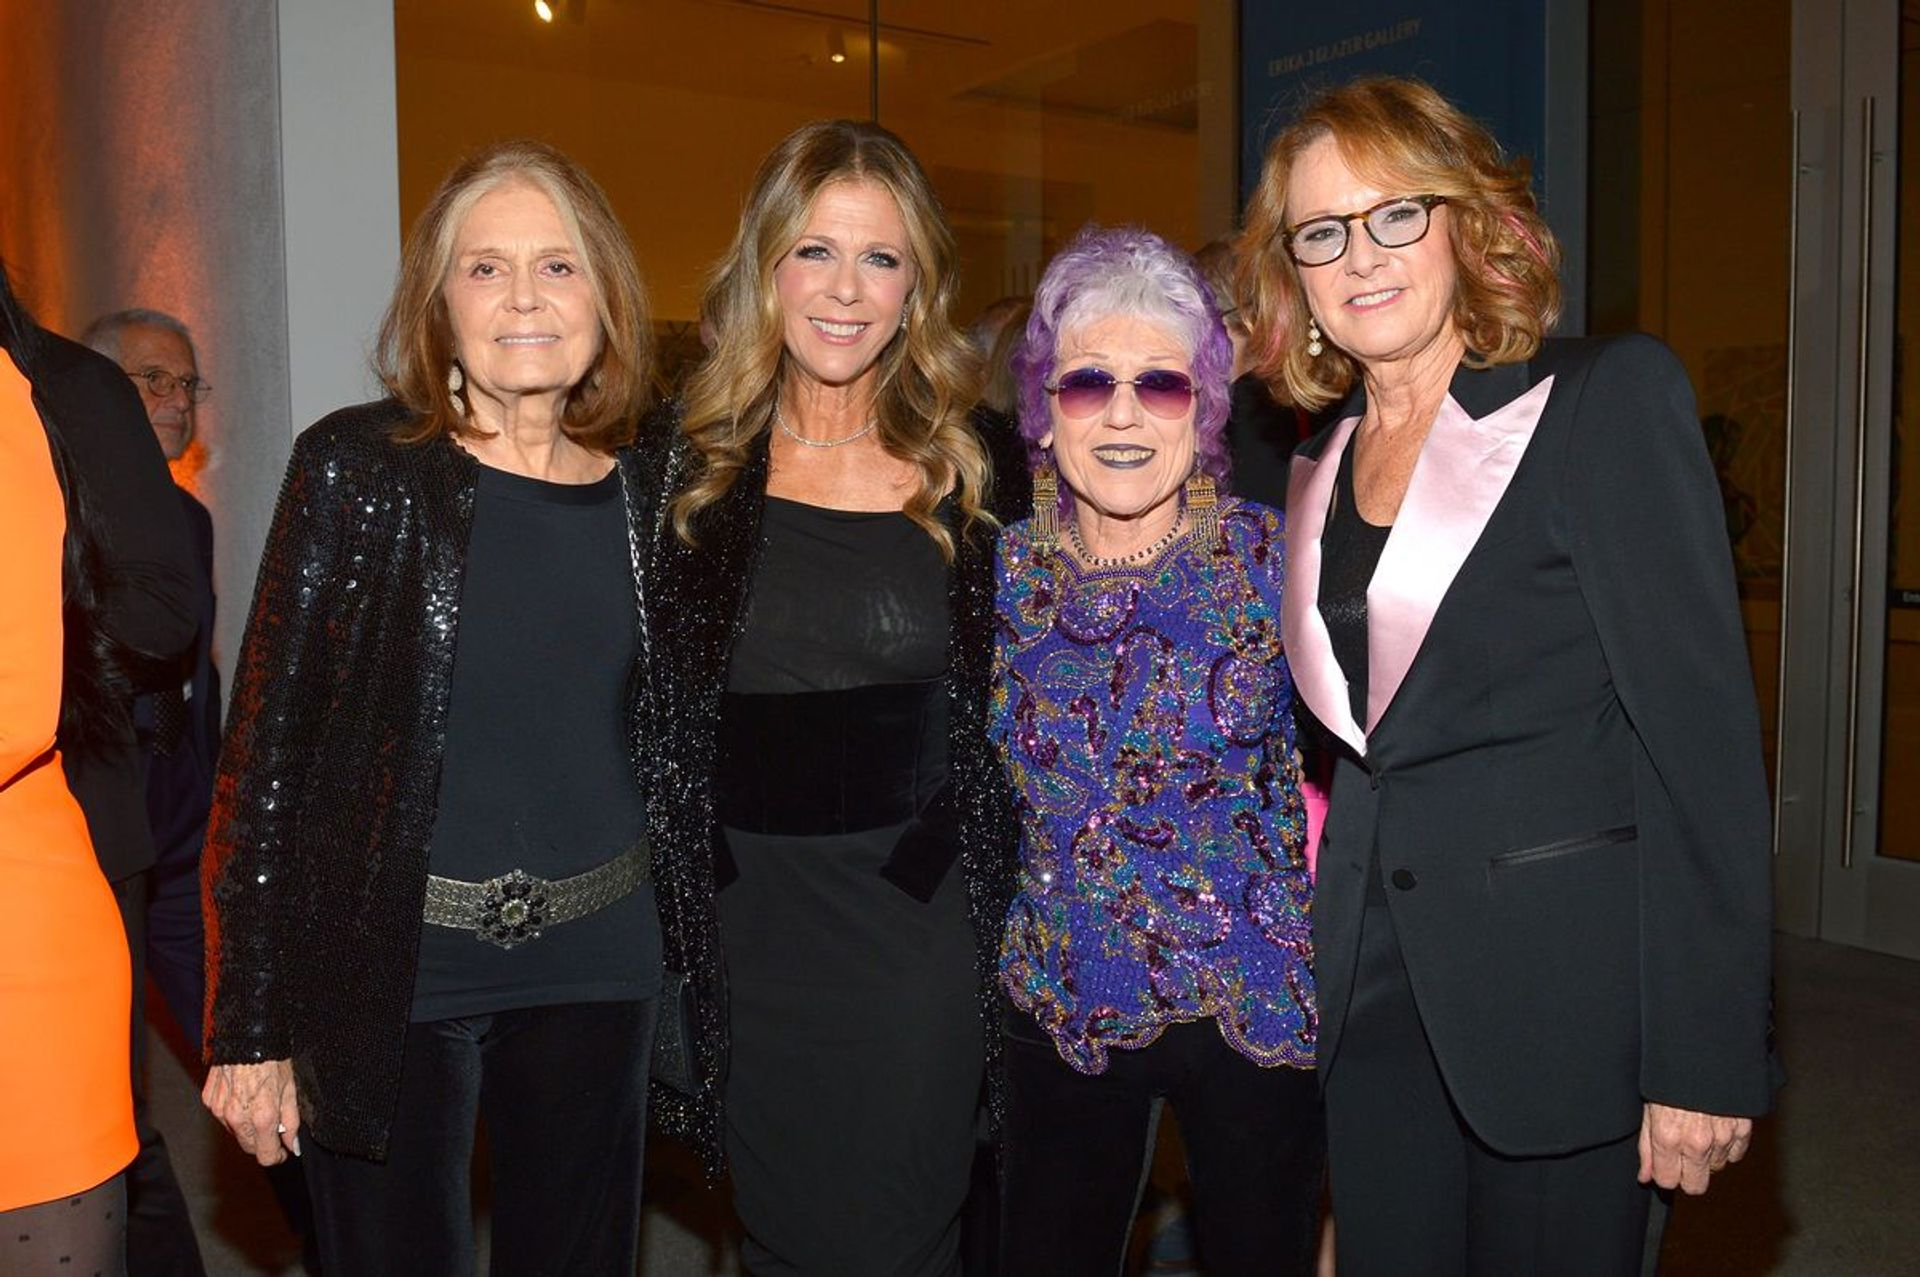 Gloria Steinem (left), with Hammer Museum trustee Rita Wilson, the artist Judy Chicago and the museum's director Ann Philbin at the 2019 Gala in the Garden Photo: Donato Sardella/Getty Images